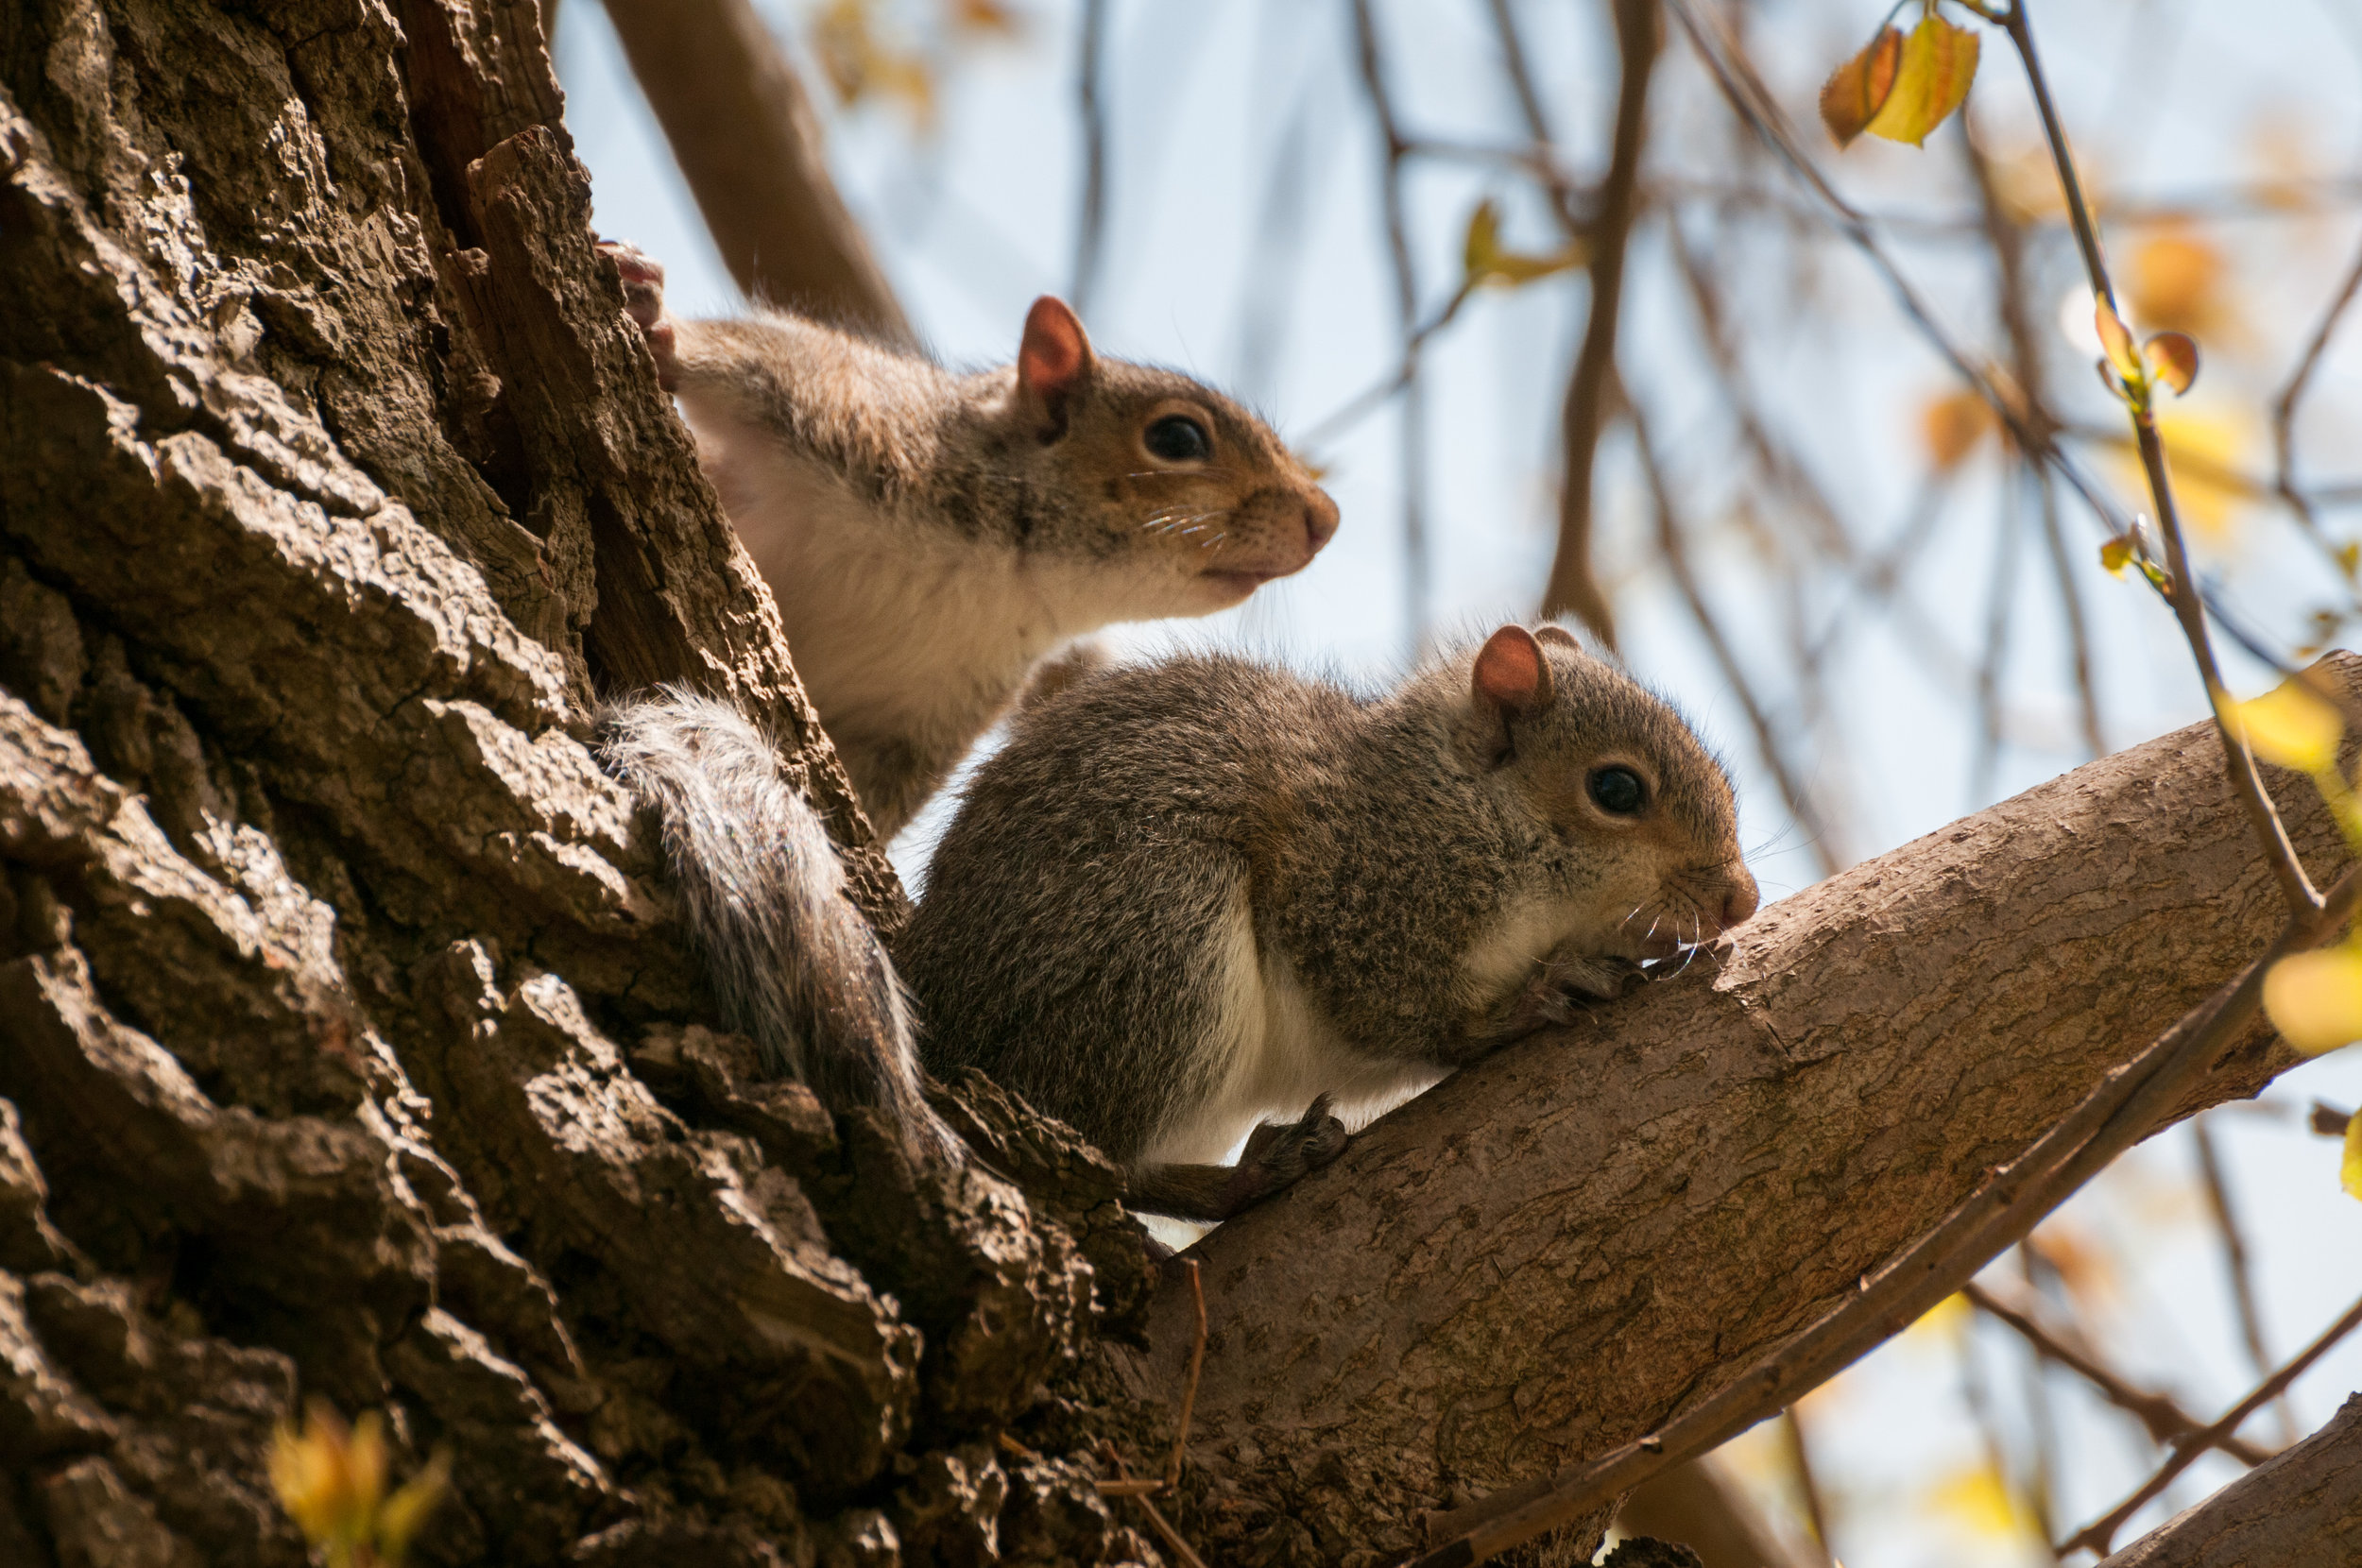 Squirrel - 2018 - MAR_8319.jpg